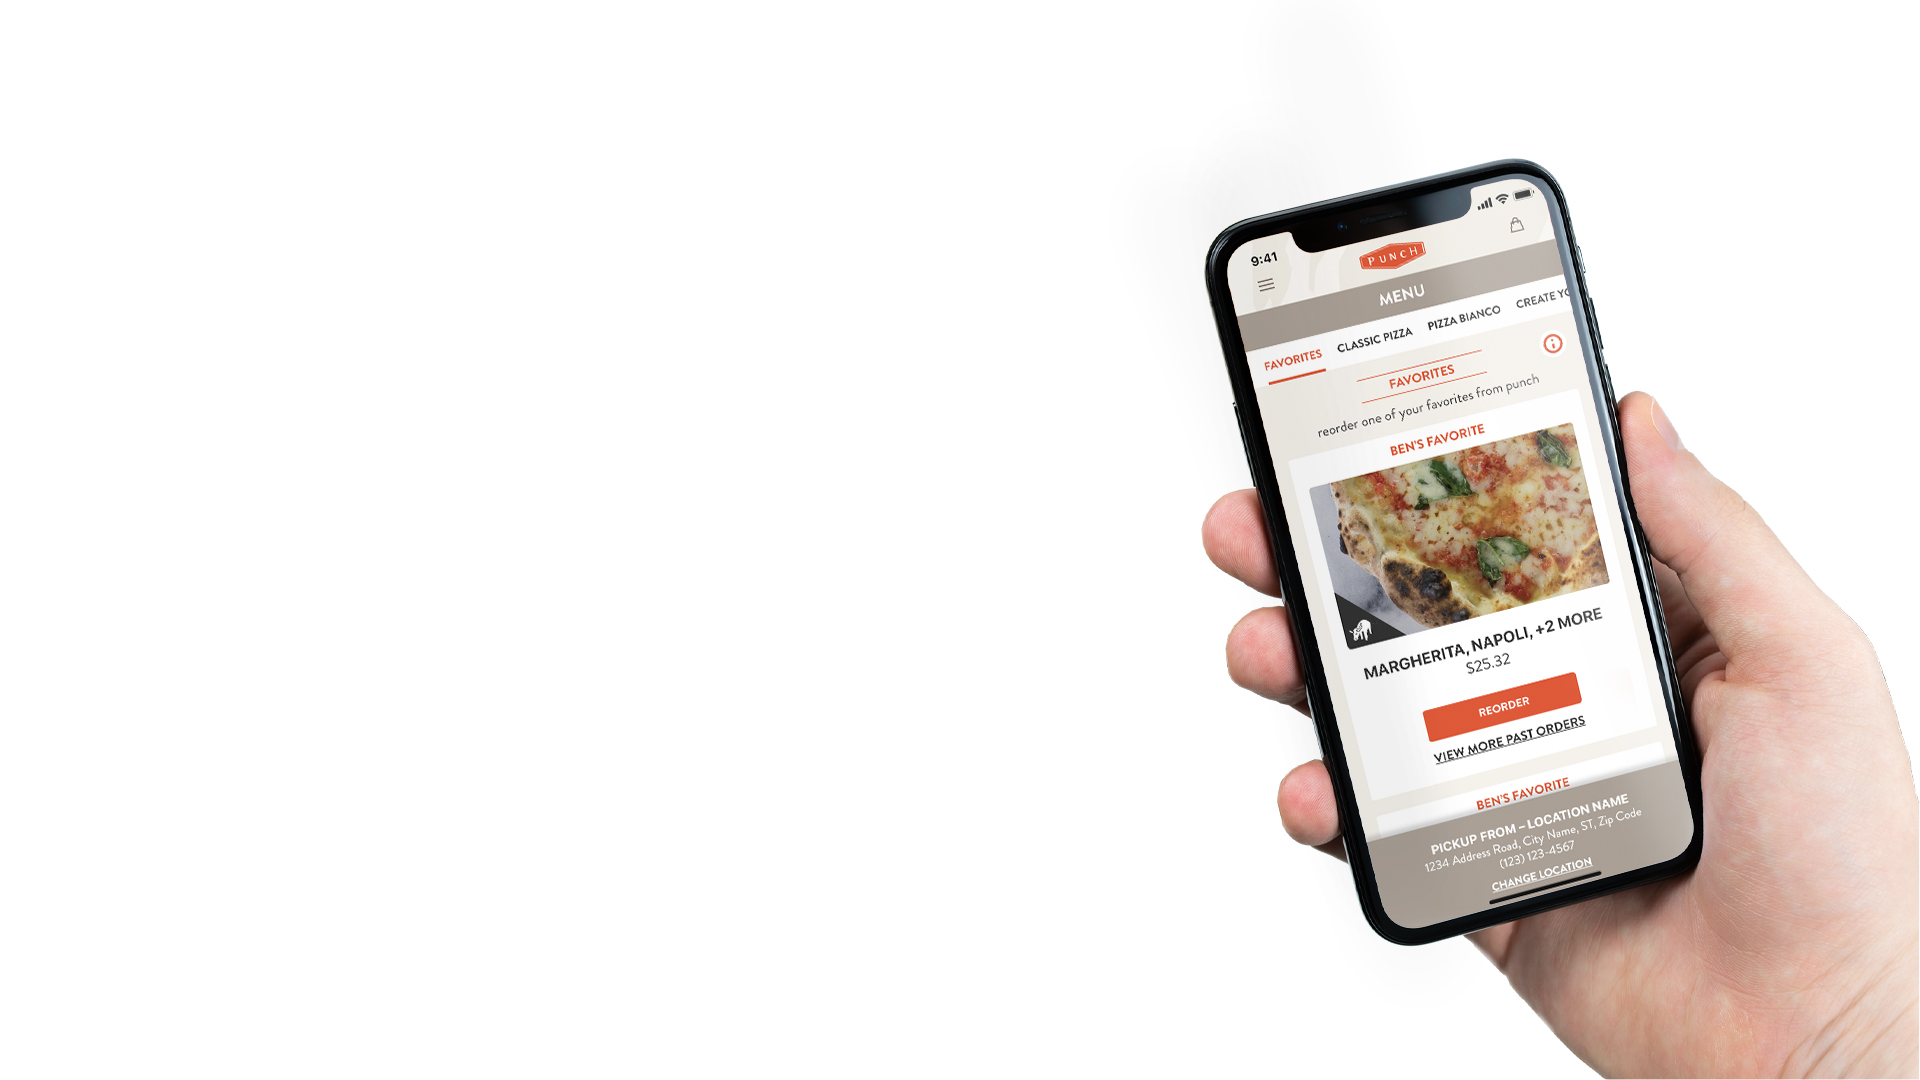 Punch pizza online ordering iphone